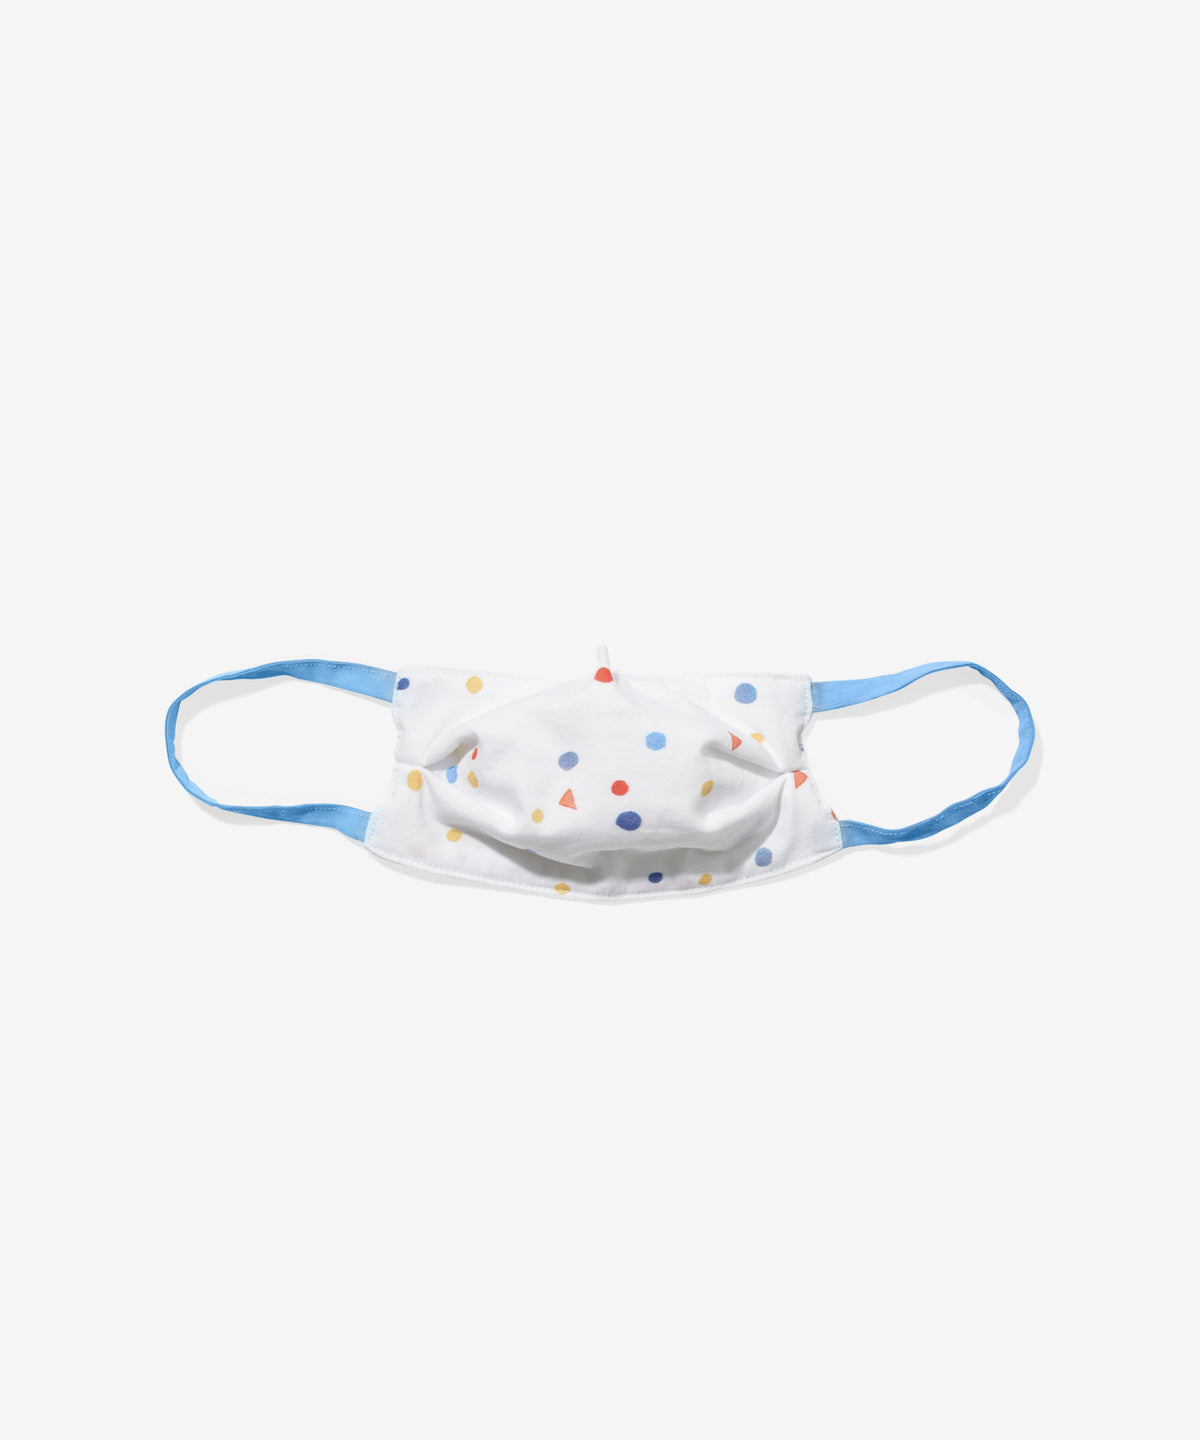 Child Mask 3 Pack, Stripes and Spots